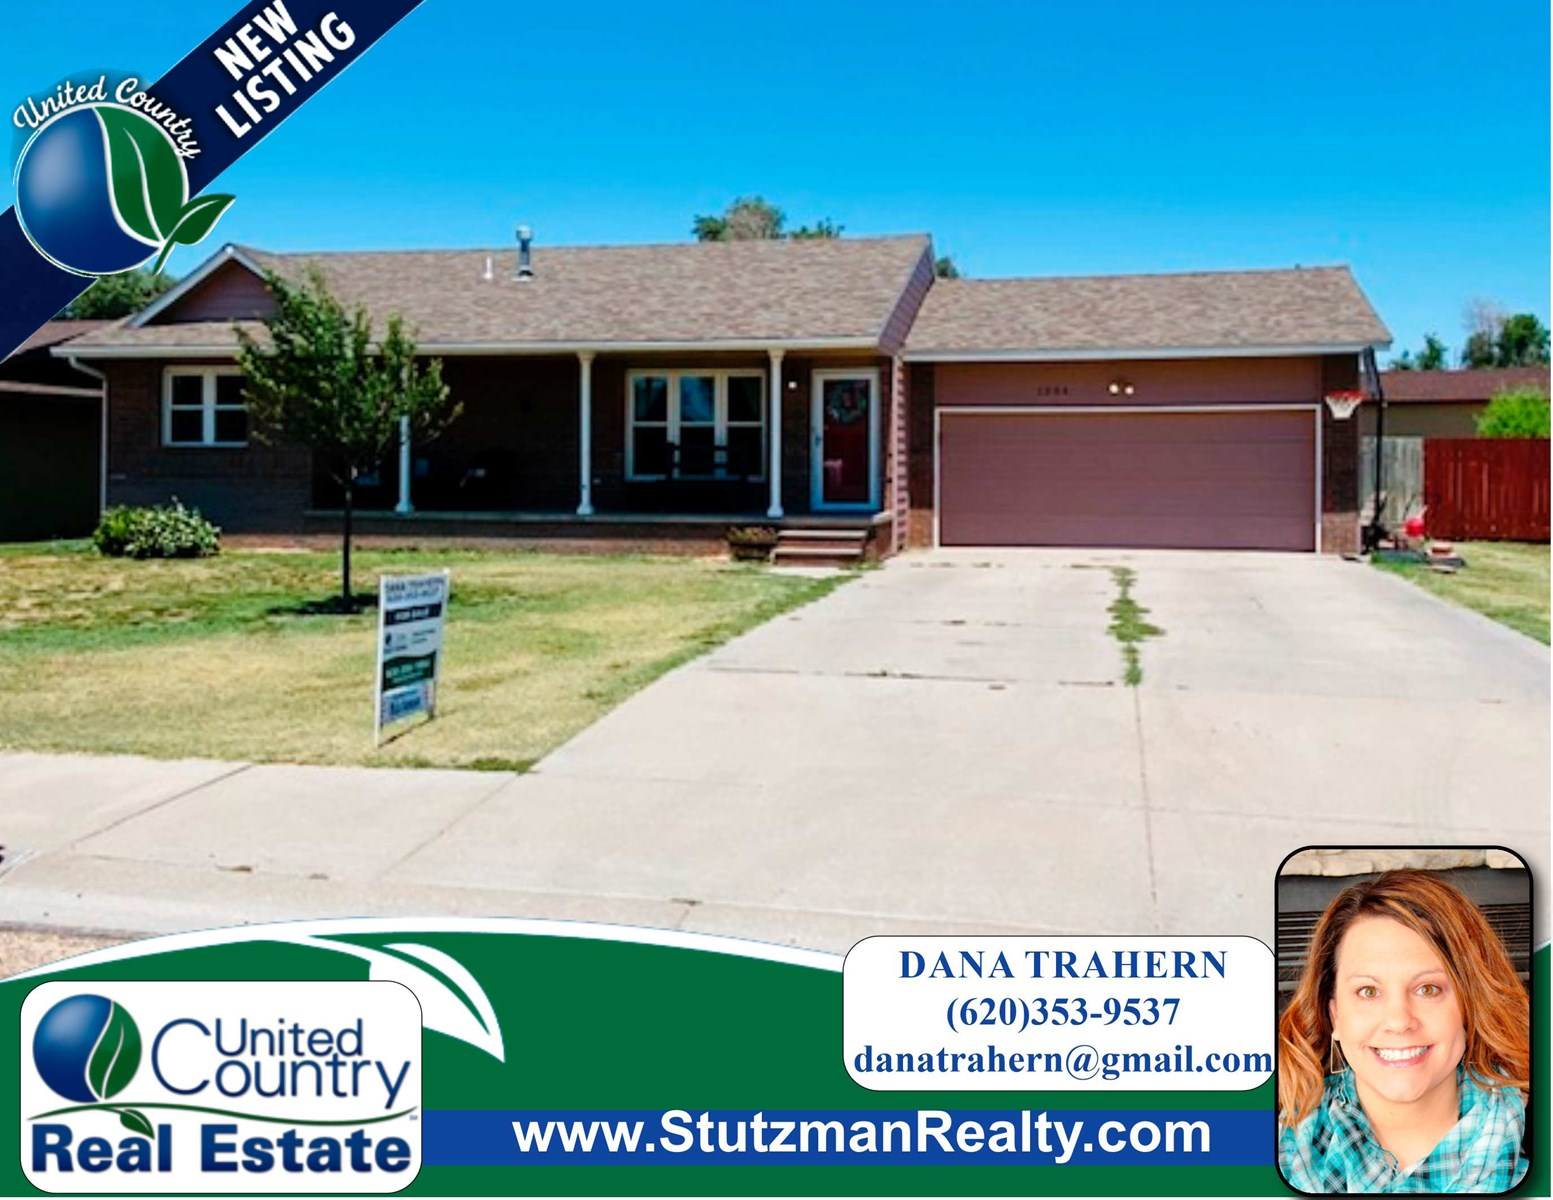 ADORABLE FOUR BEDROOM HOME FOR SALE IN ULYSSES, KS